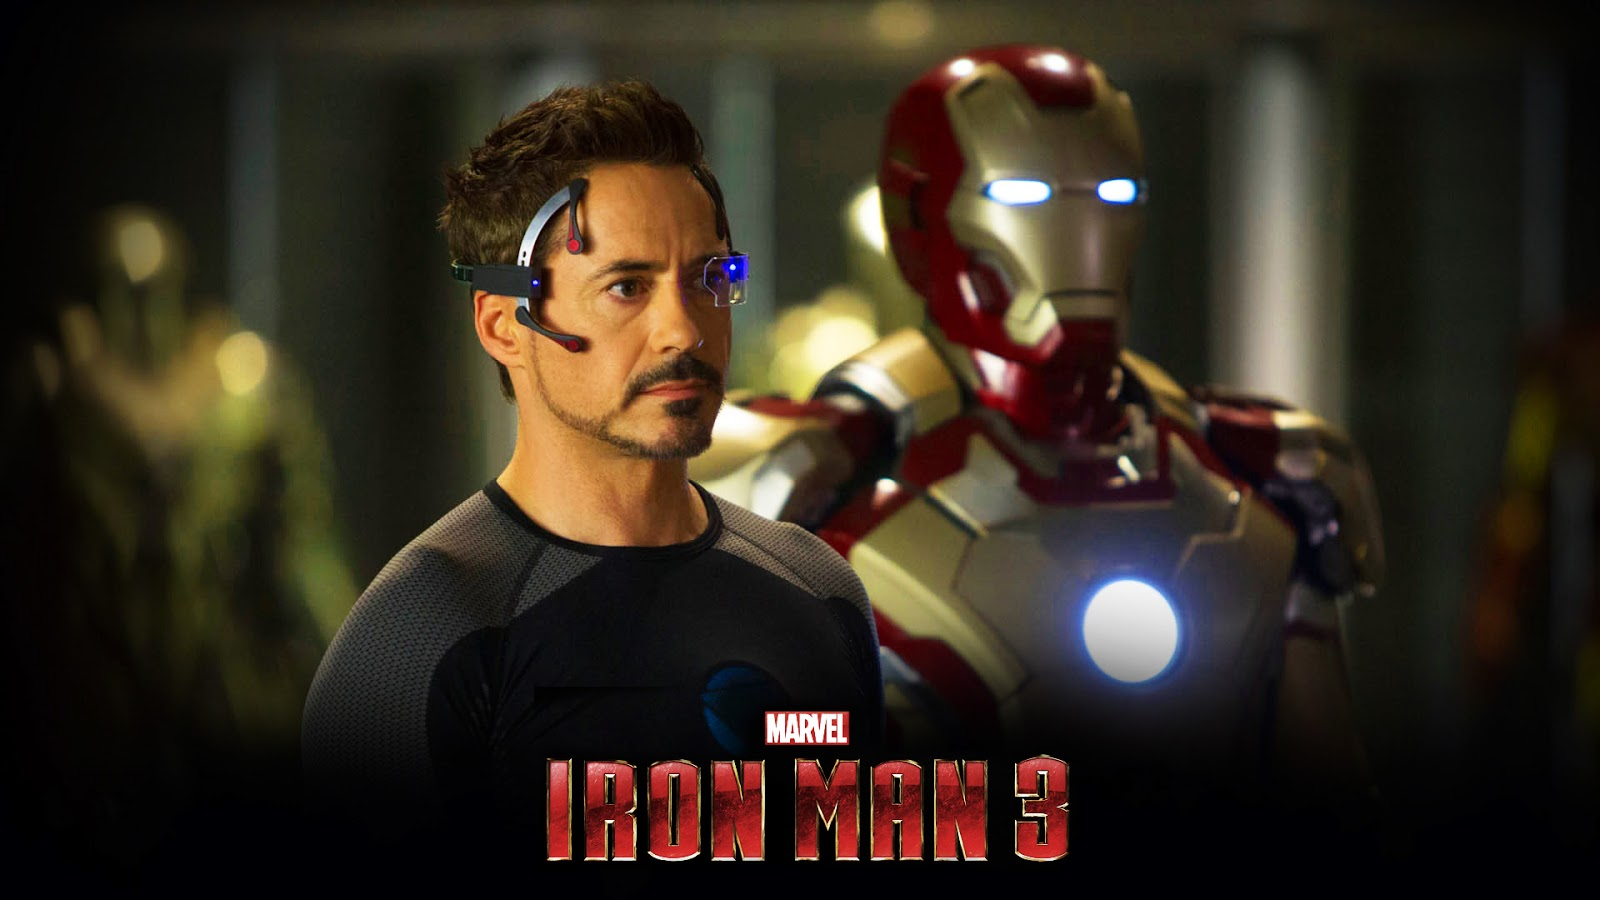 Iron Man 3 Wide Screen Wallpaper